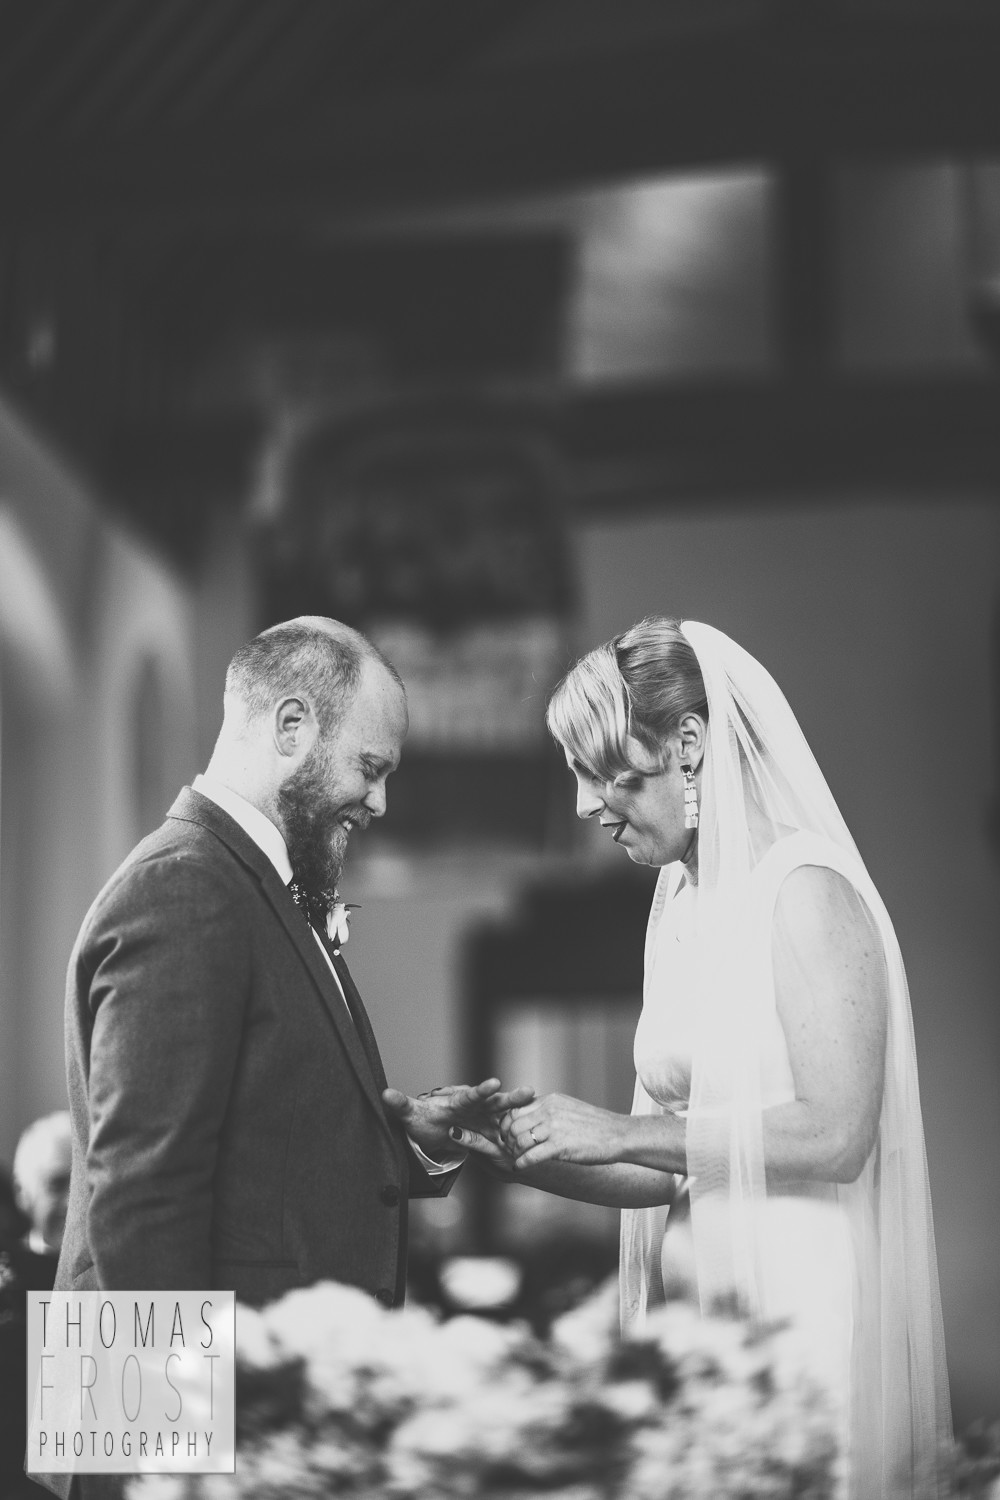 Exchange of rings at Prittlewell Priory Wedding, Southend-on-sea.